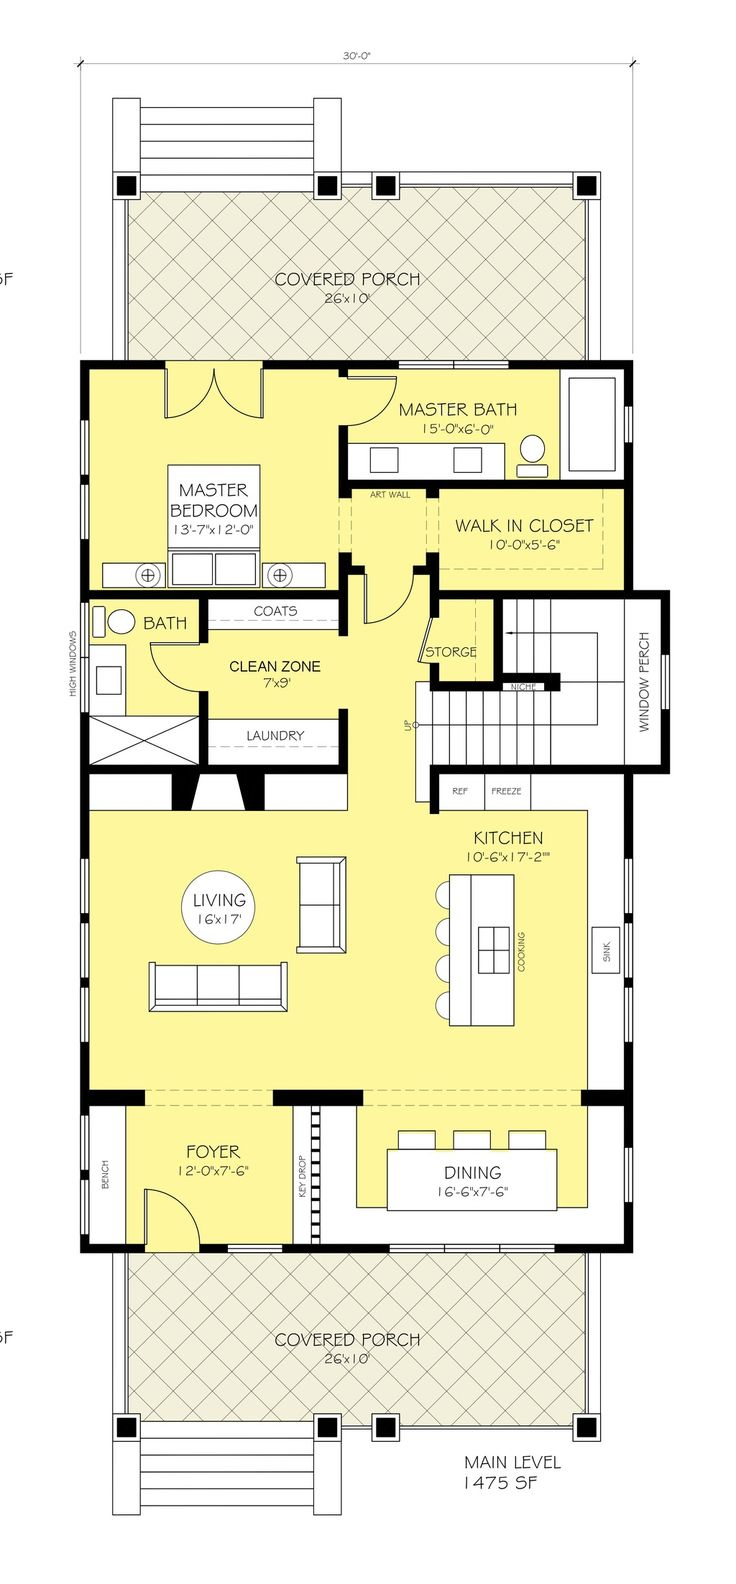 70 best great floor plans images on pinterest architecture craftsman style house plan 3 beds 3 baths 2206 sq ft plan 888